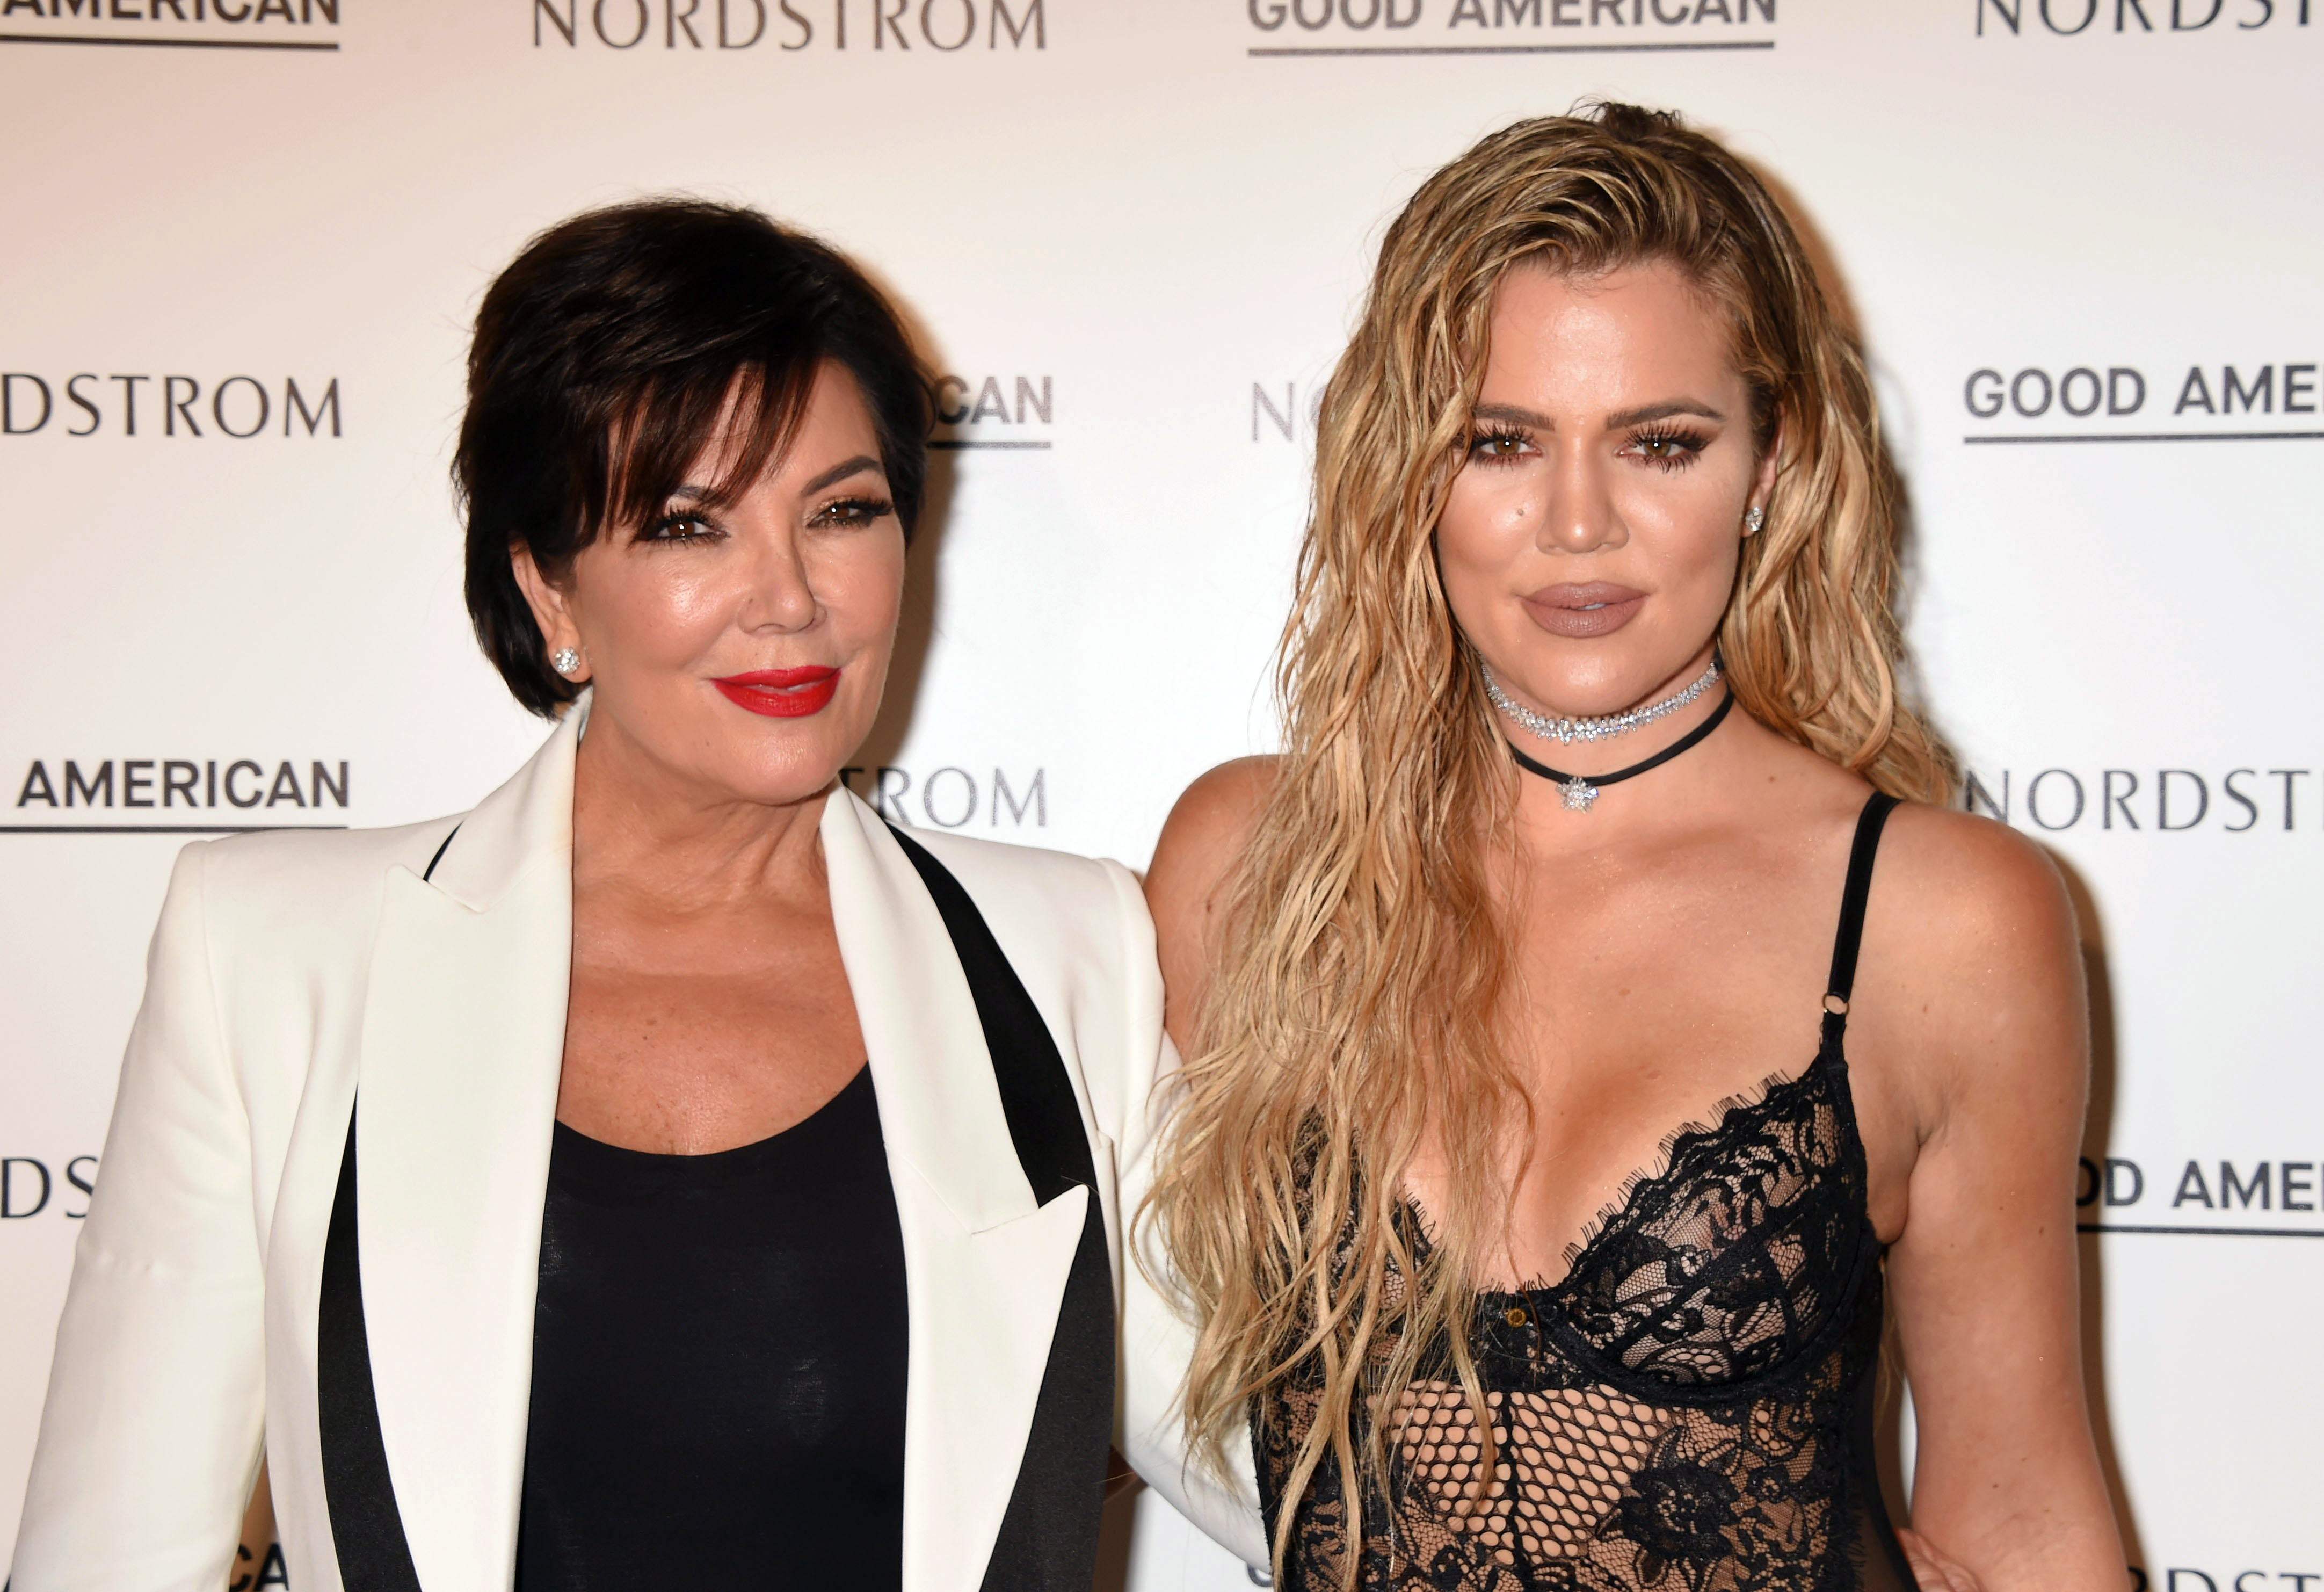 TV personality Kris Jenner (L) and Good American Founding Partner Khloe Kardashian attend the Good American Launch Event at Nordstrom at the Grove on October 18, 2016 in Los Angeles, California.